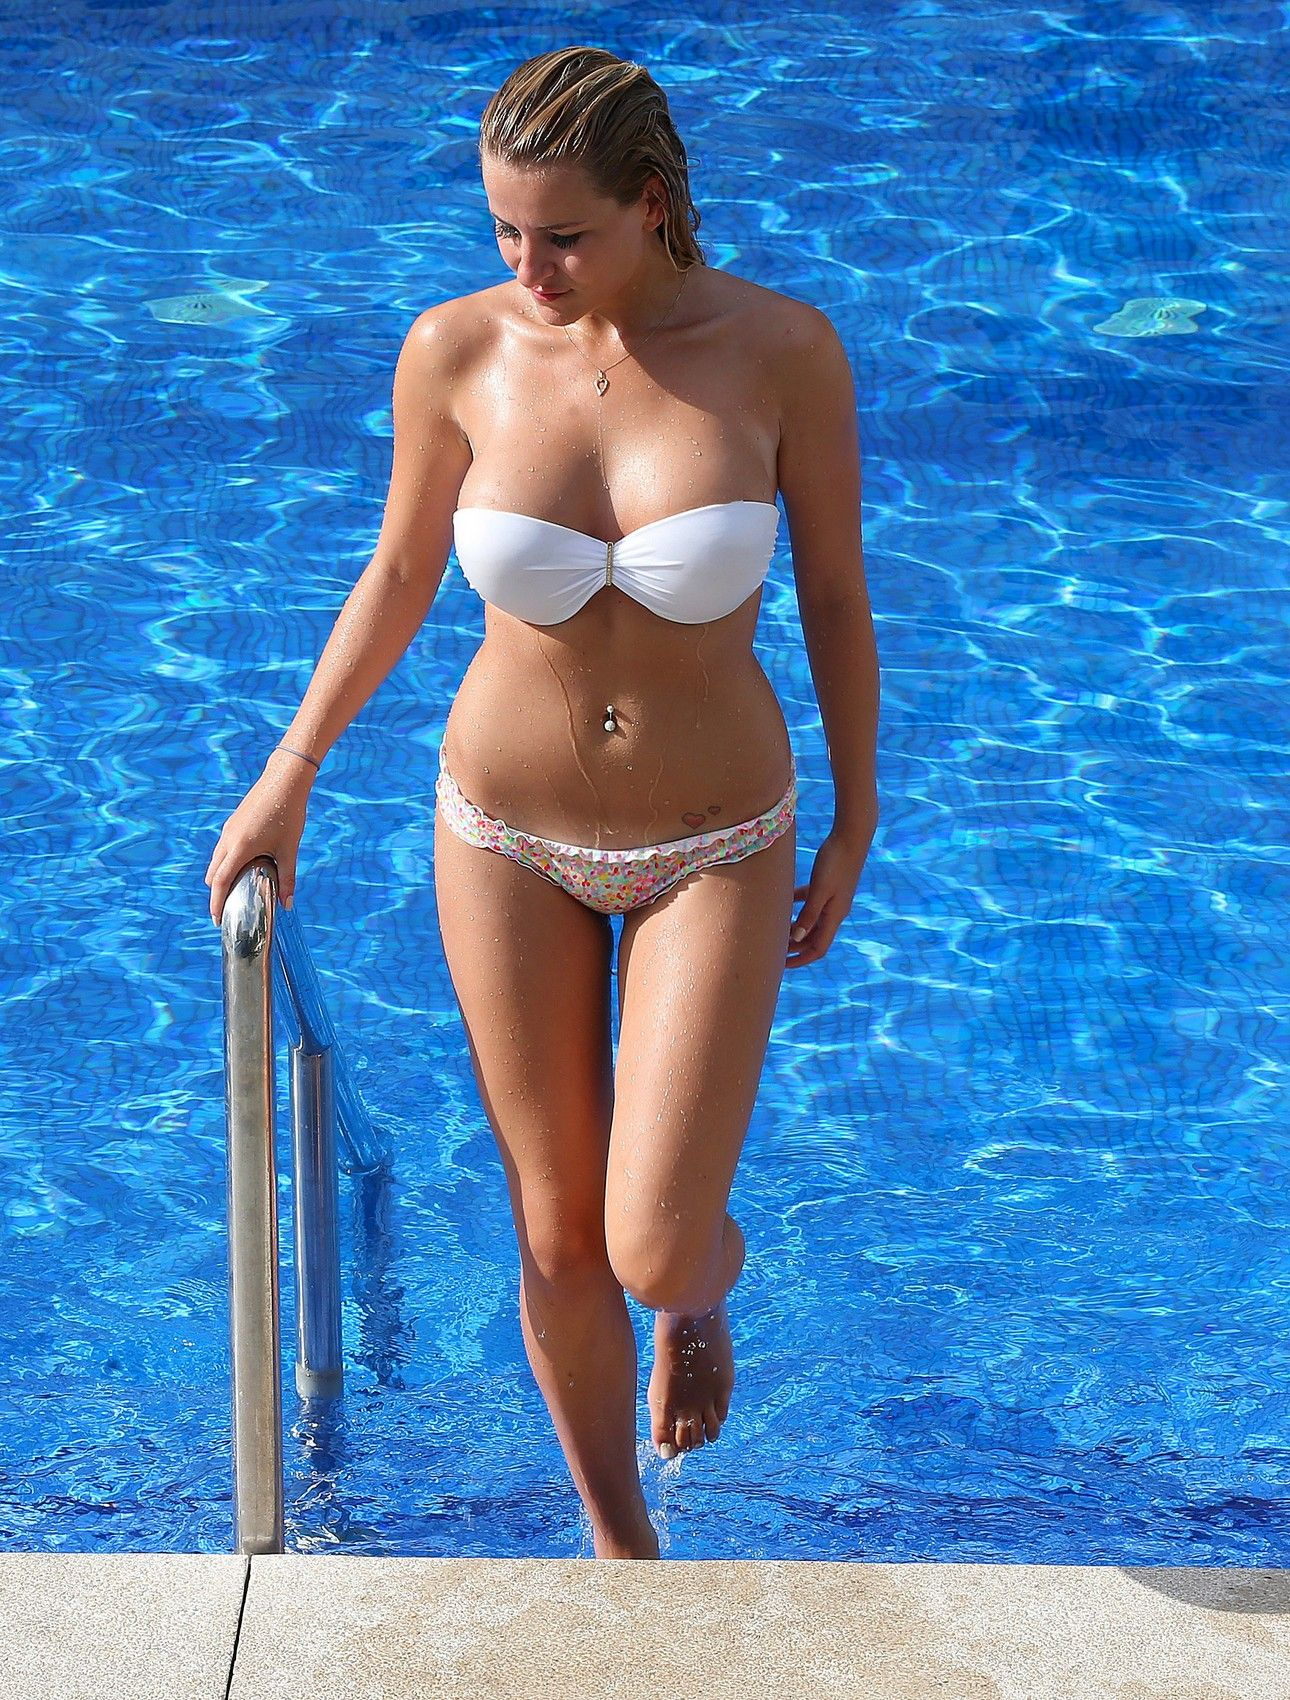 Georgia Kousoulou sexy swimming pool pic